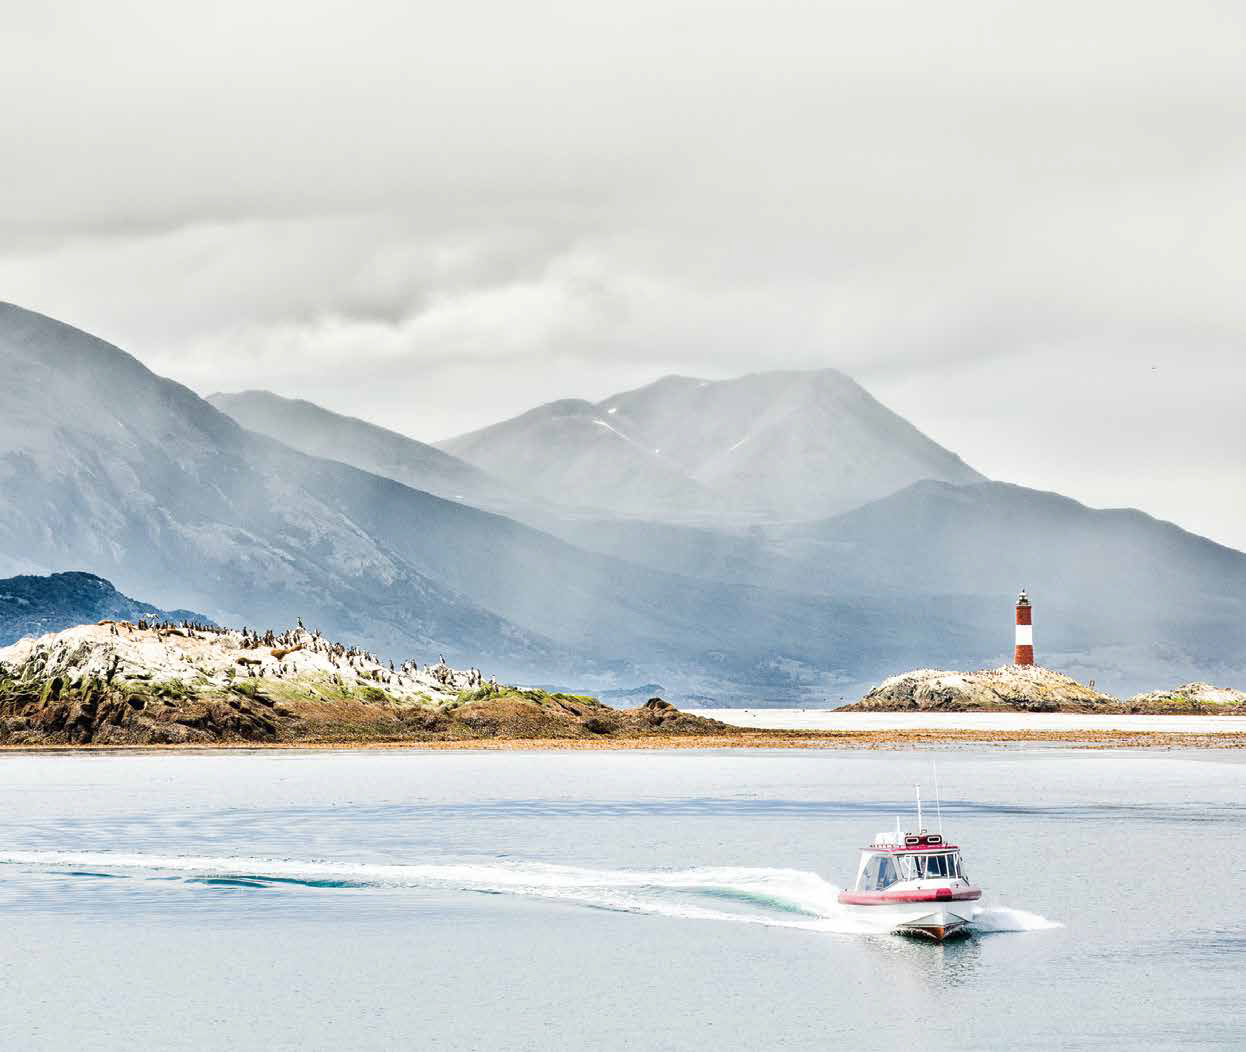 beagle channel nav